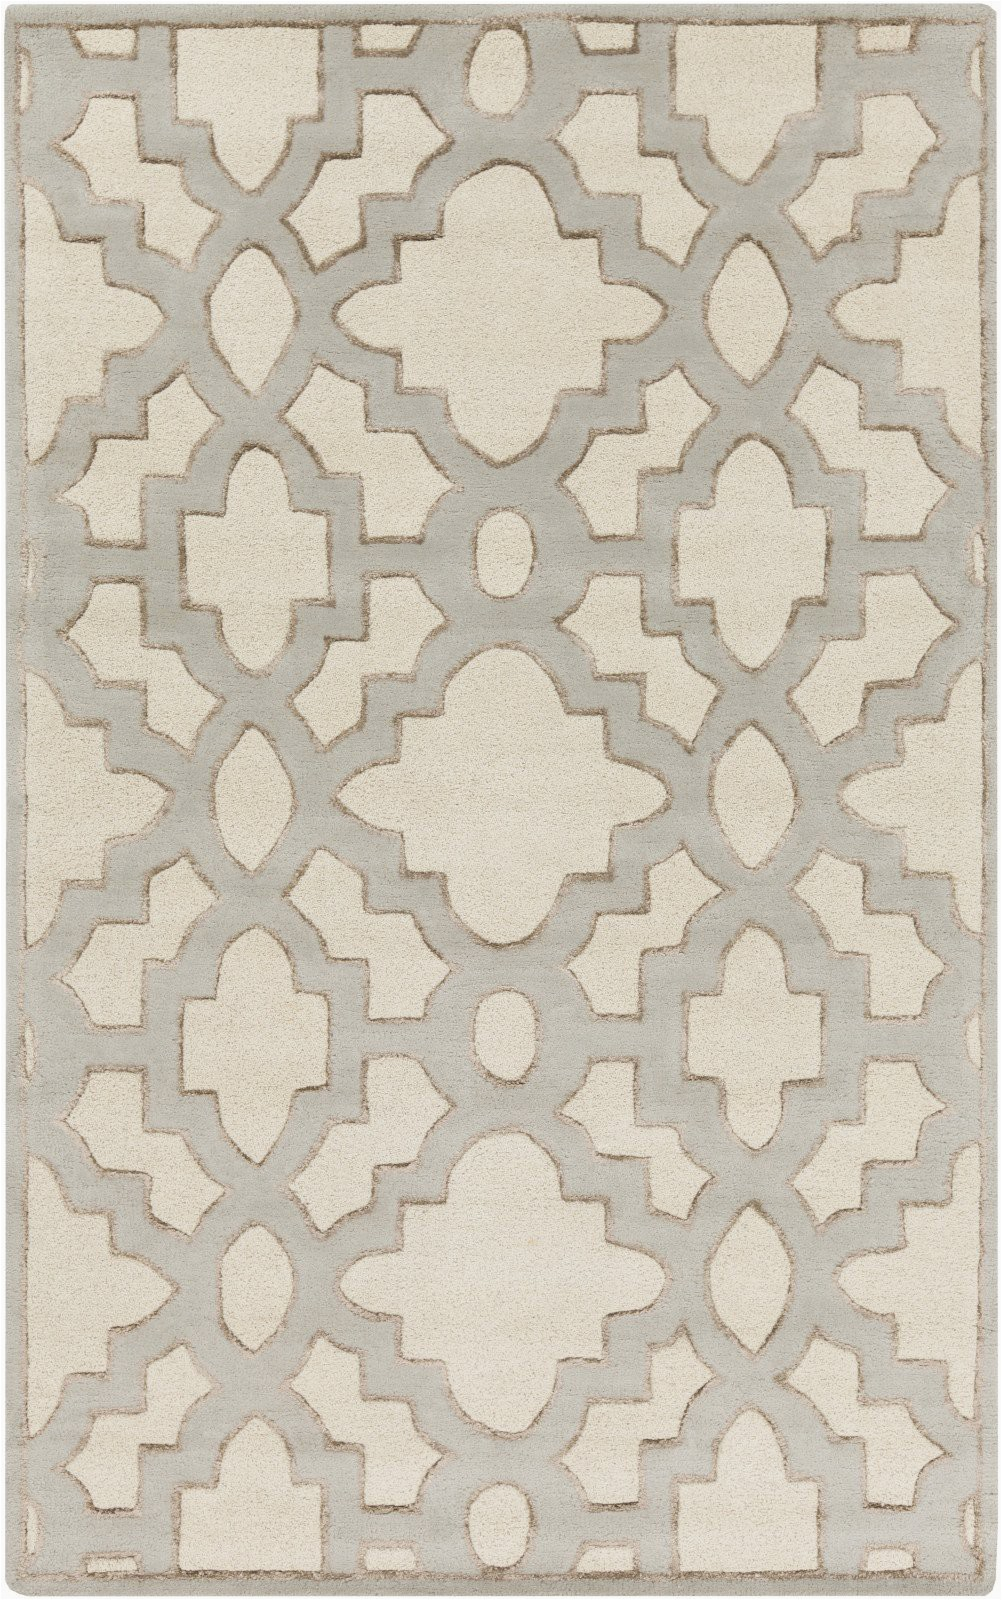 surya modern classics can 2041 ivory area rug by candice olson